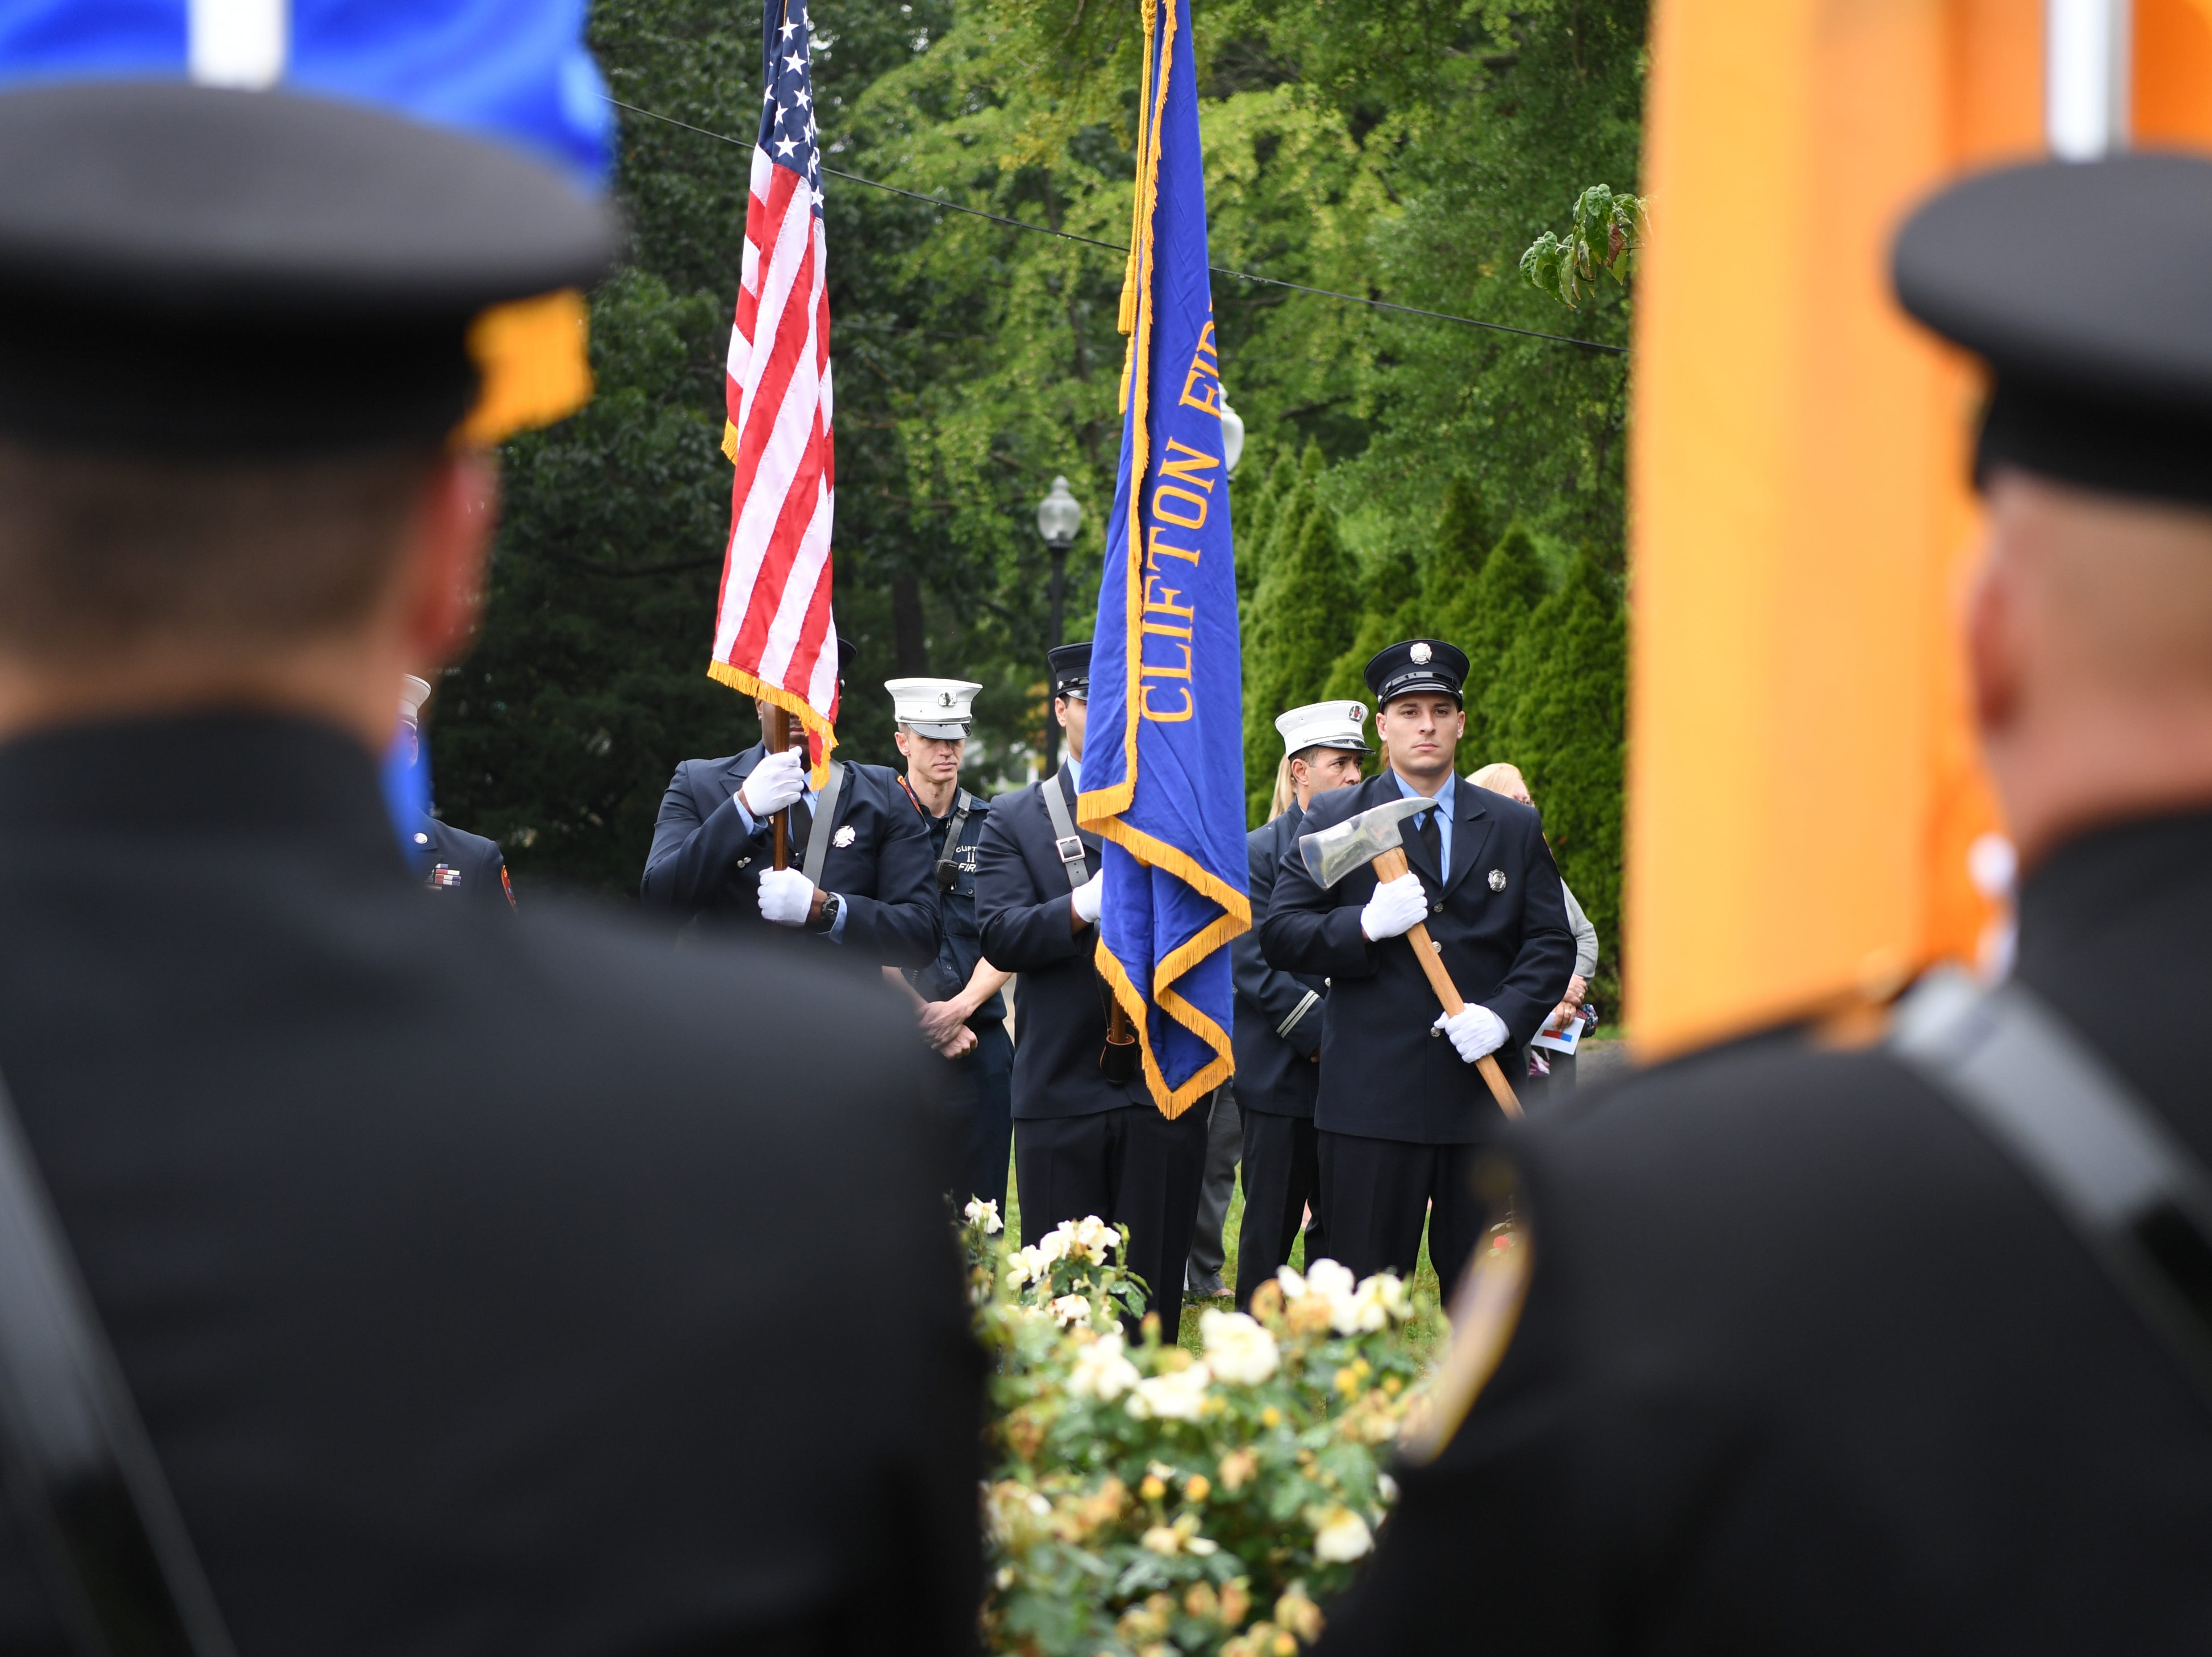 Members of Clifton FD during a 9/11 memorial service at Clifton City Hall on Tuesday, September 11, 2018.